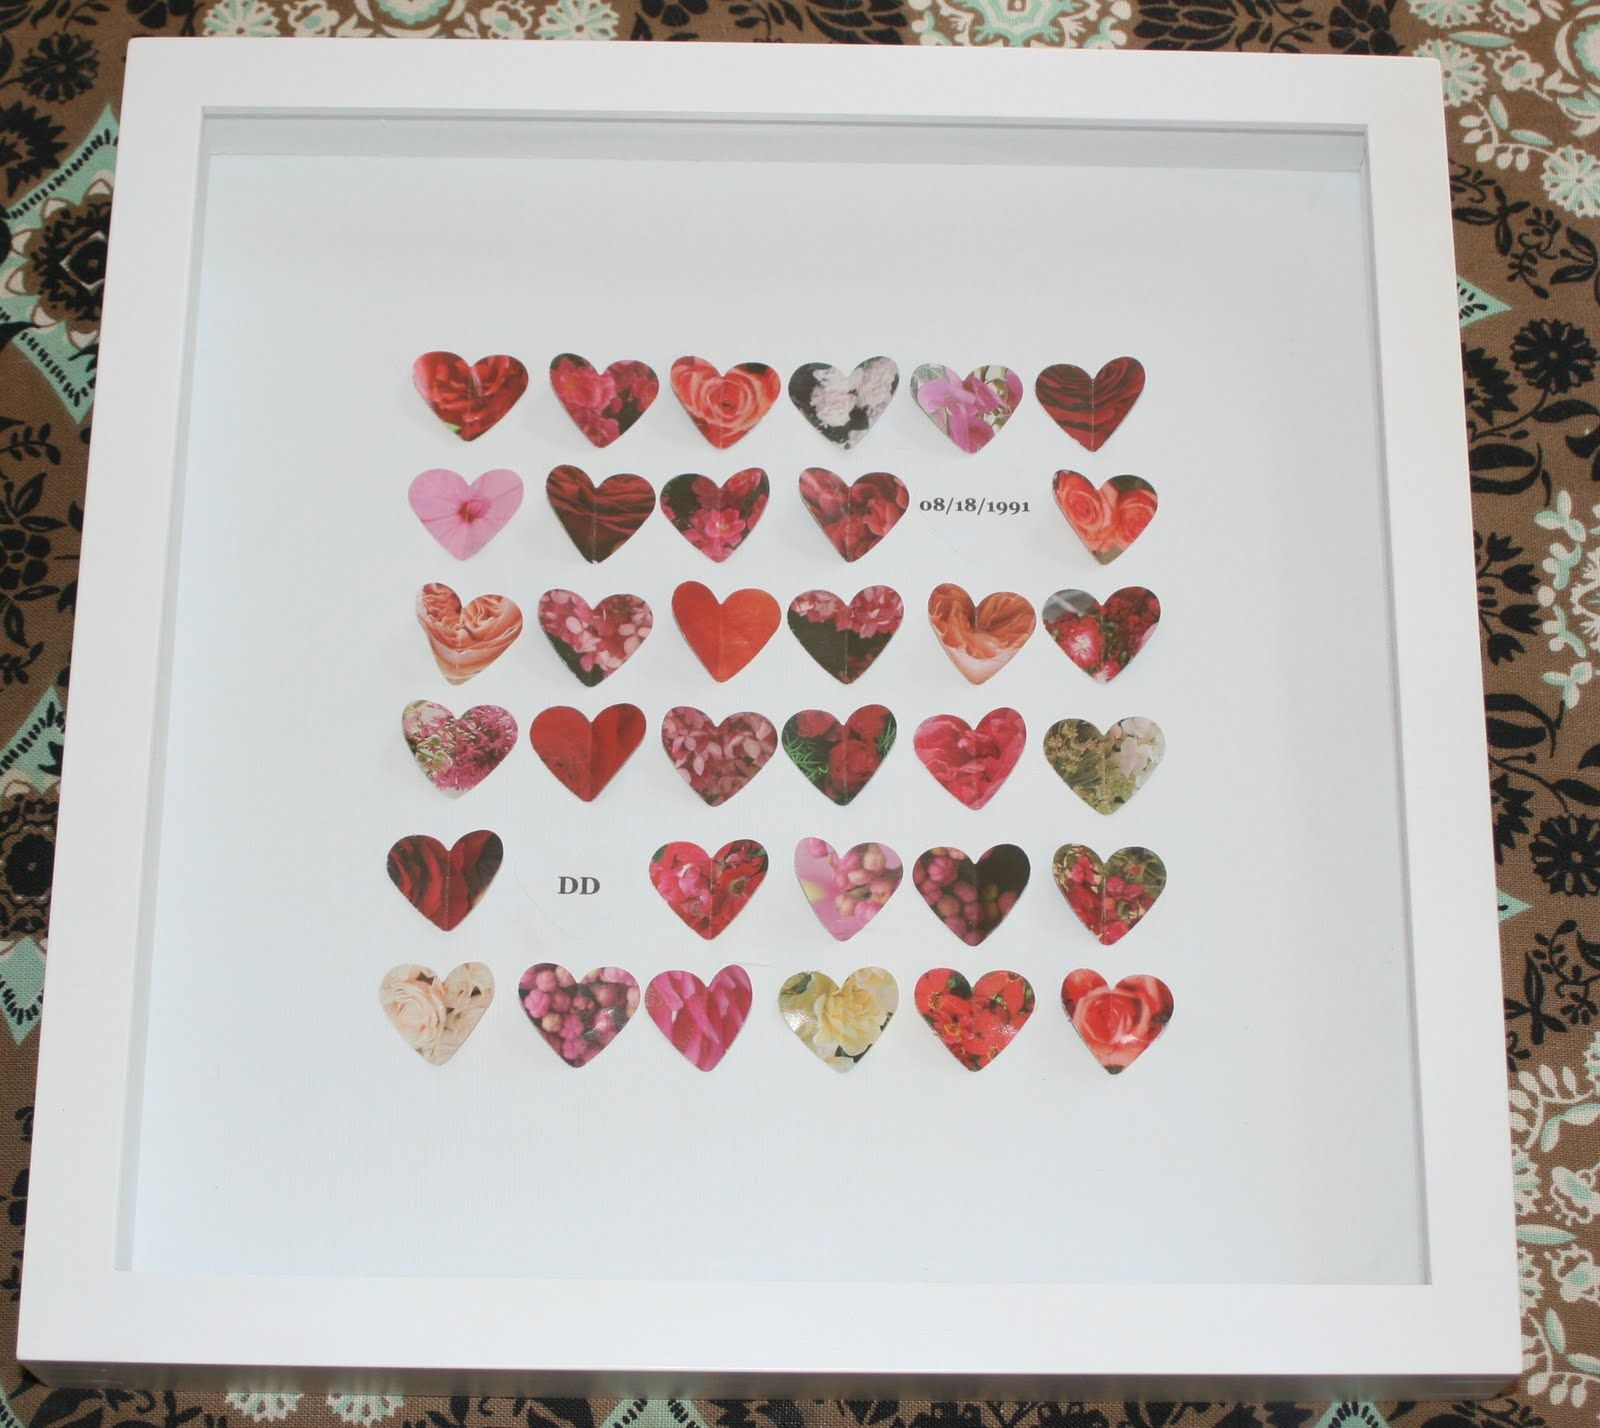 Wedding Gifts Picture Frames : ... gifts homemade gifts anniversary ideas wedding frames wedding ideas